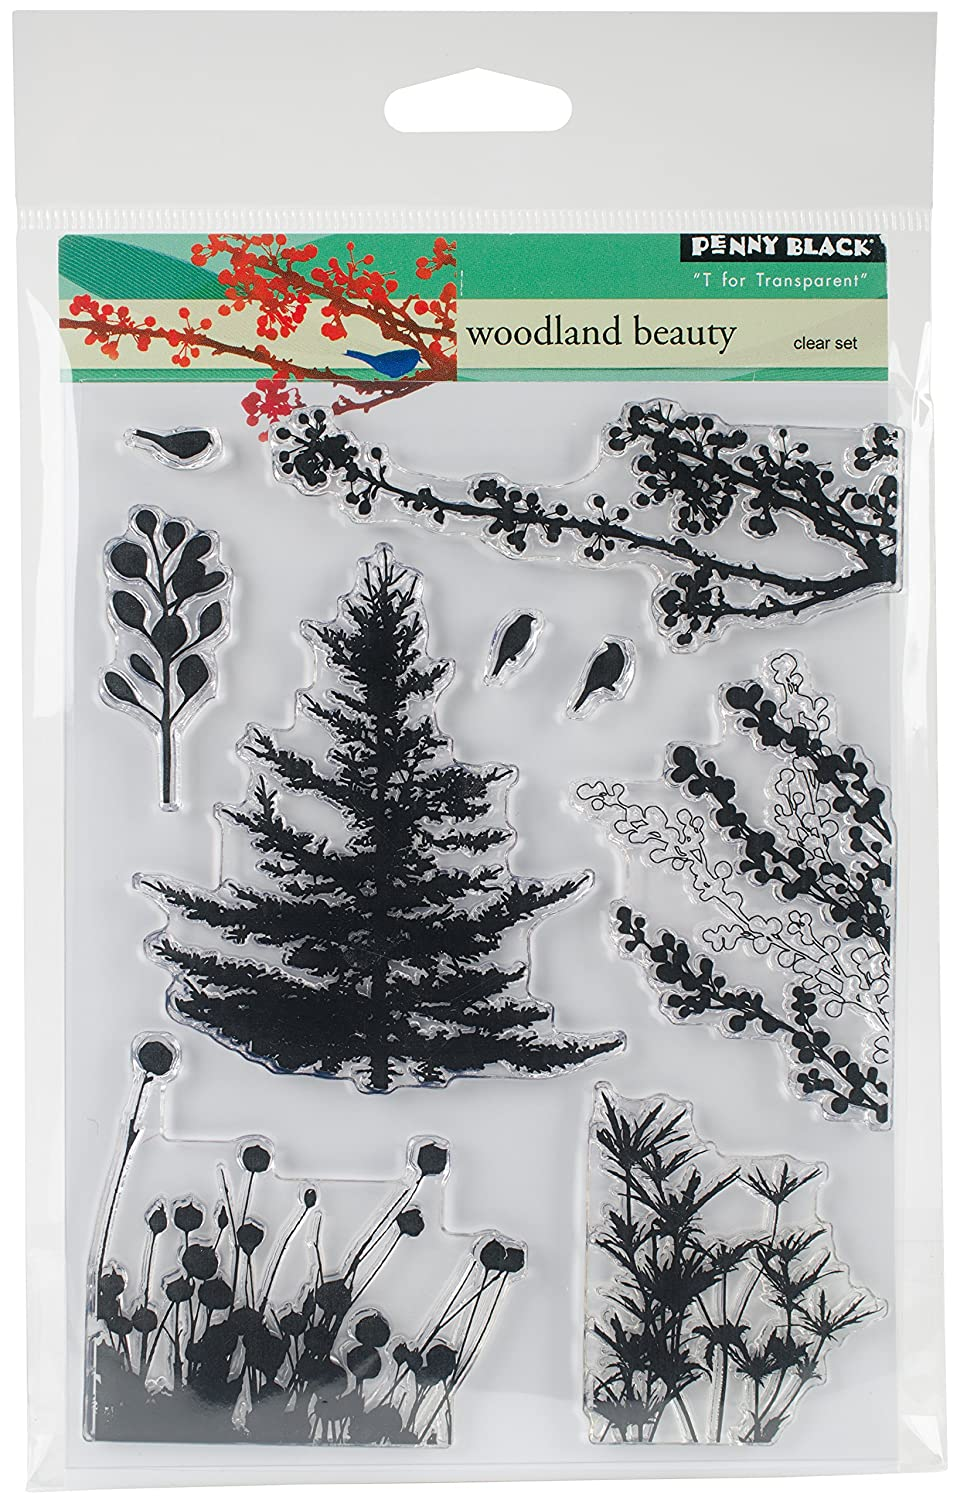 Penny Black 30-379 Clear Set Clear Stamp Set, 30-379,Woodland Beauty Penny Black Inc